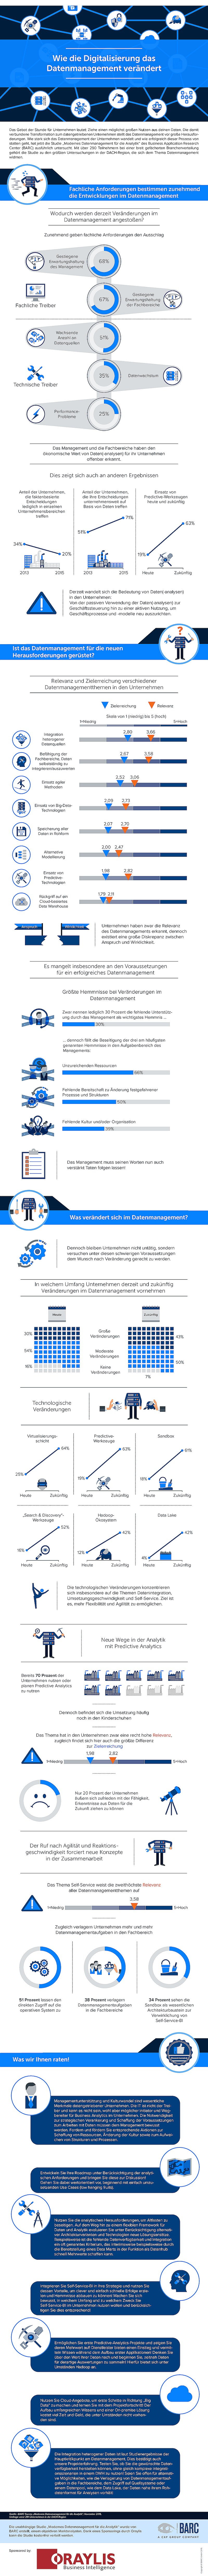 infografik barc digitalisierung datenmanagement